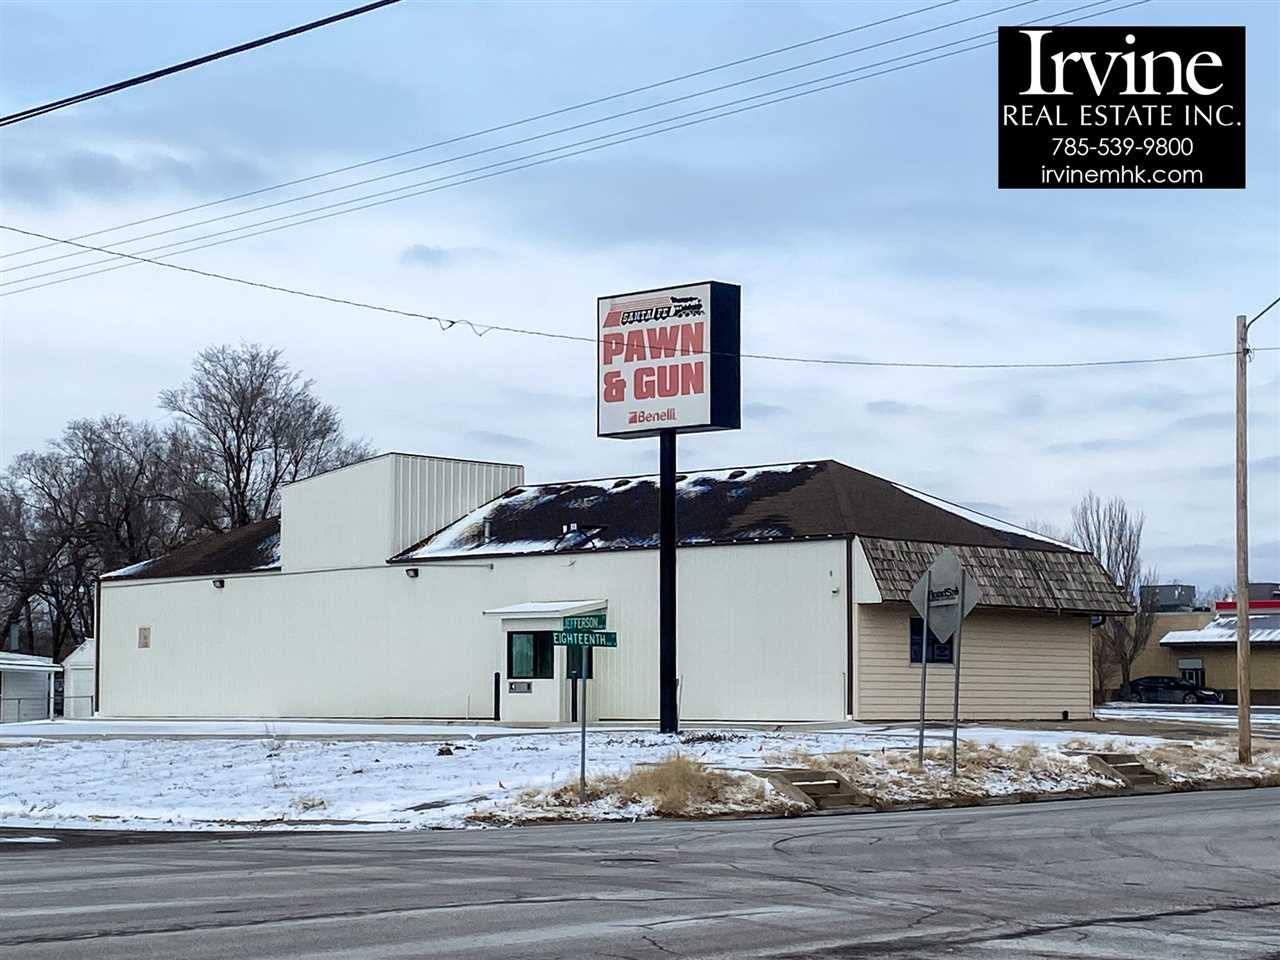 Seize the opportunity to own your own business building in Junction City!  Located on one of the busiest intersections in Junction City and already has a drive-thru window and large overhead door!  There are 101 options for this building; wood shop, car shop, dry cleaning, janitorial/cleaning service, eating establishment or drive-through restaurant, management services, bank, alcohol/liquor catering business, and much more!  Call Marlene Irvine: 785-341-8576 to view this property!